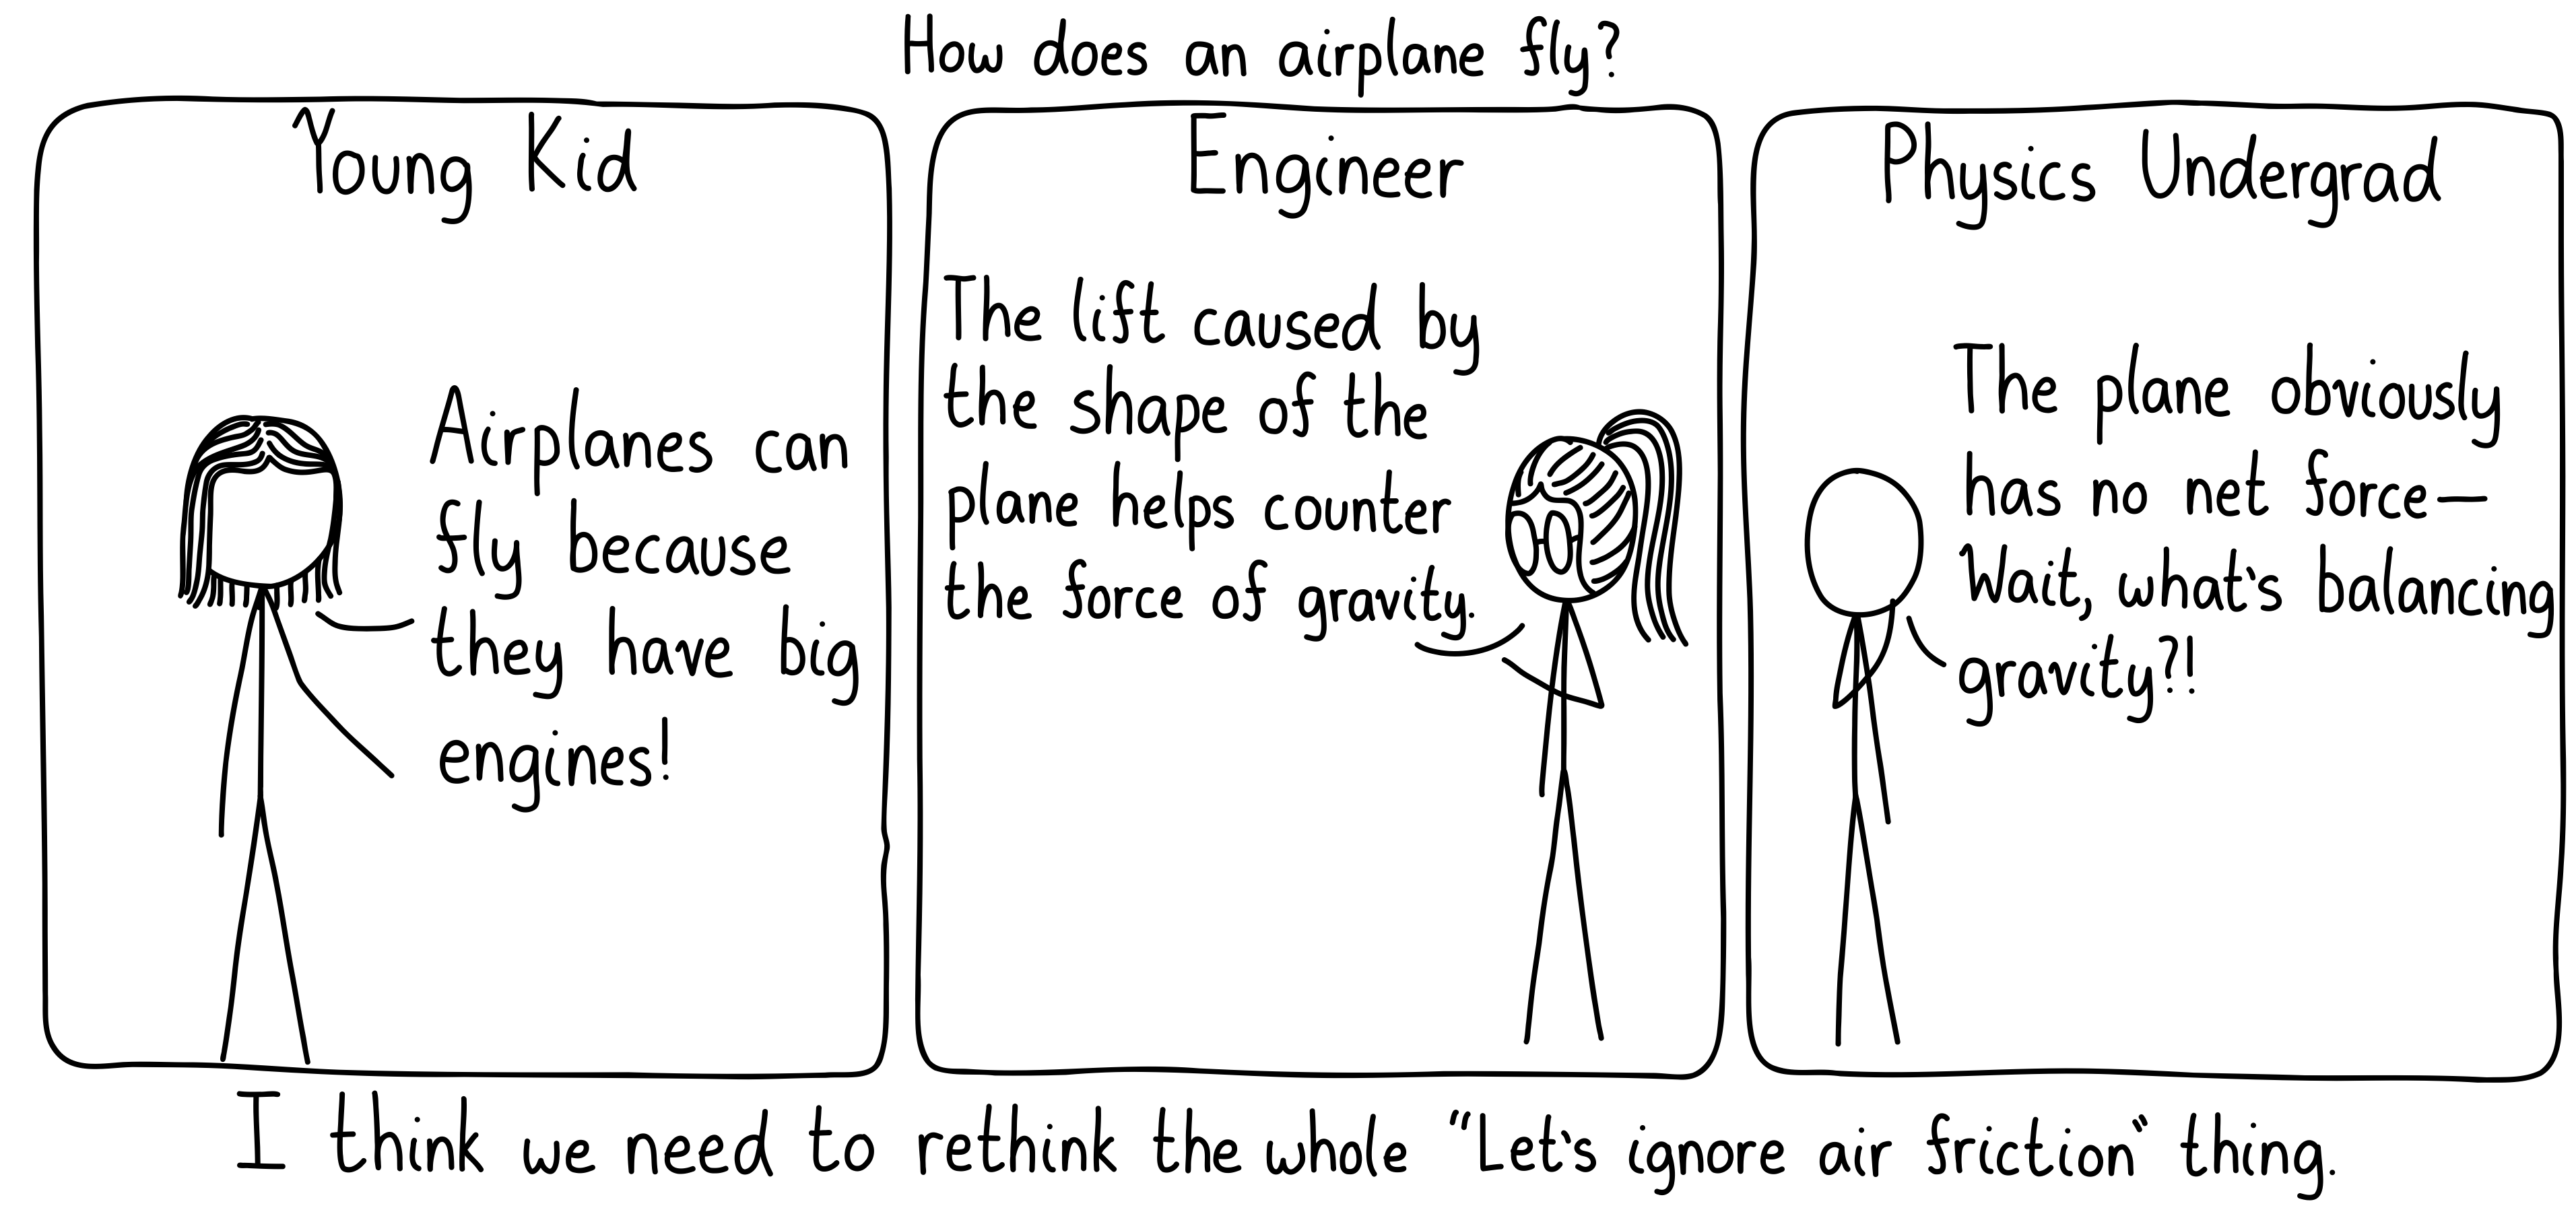 How does an airplane fly? A young kid says it's because the engines are big and powerful. An engineer says it's because lift is generated by the shape of the plane. And the physics undergrad is puzzled, because they have been taught to always ignore air friction.